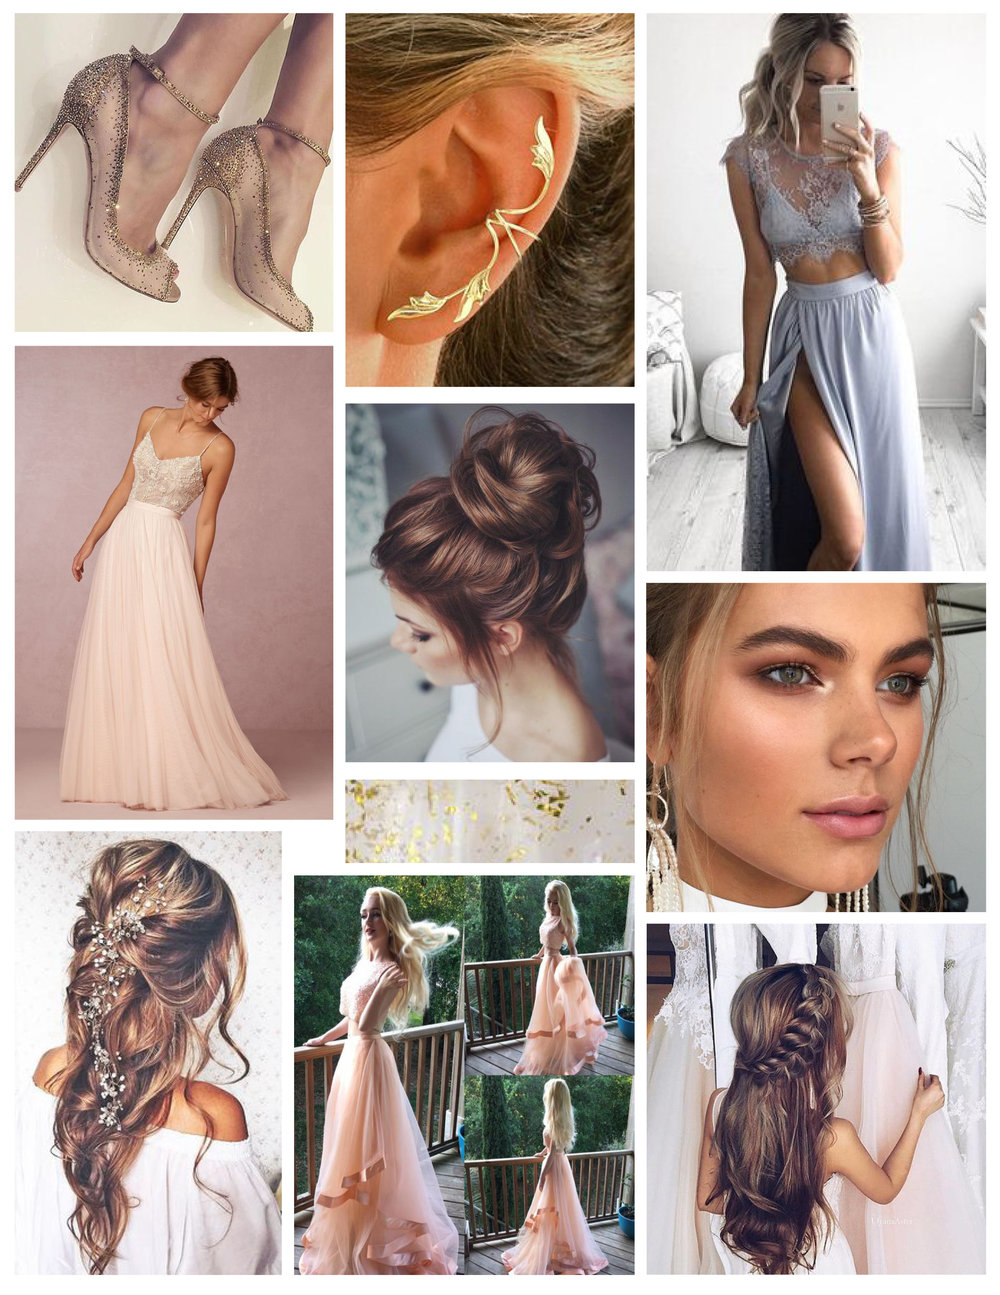 Pinterest if life- and where we found all these images for our Prom Mood Board.